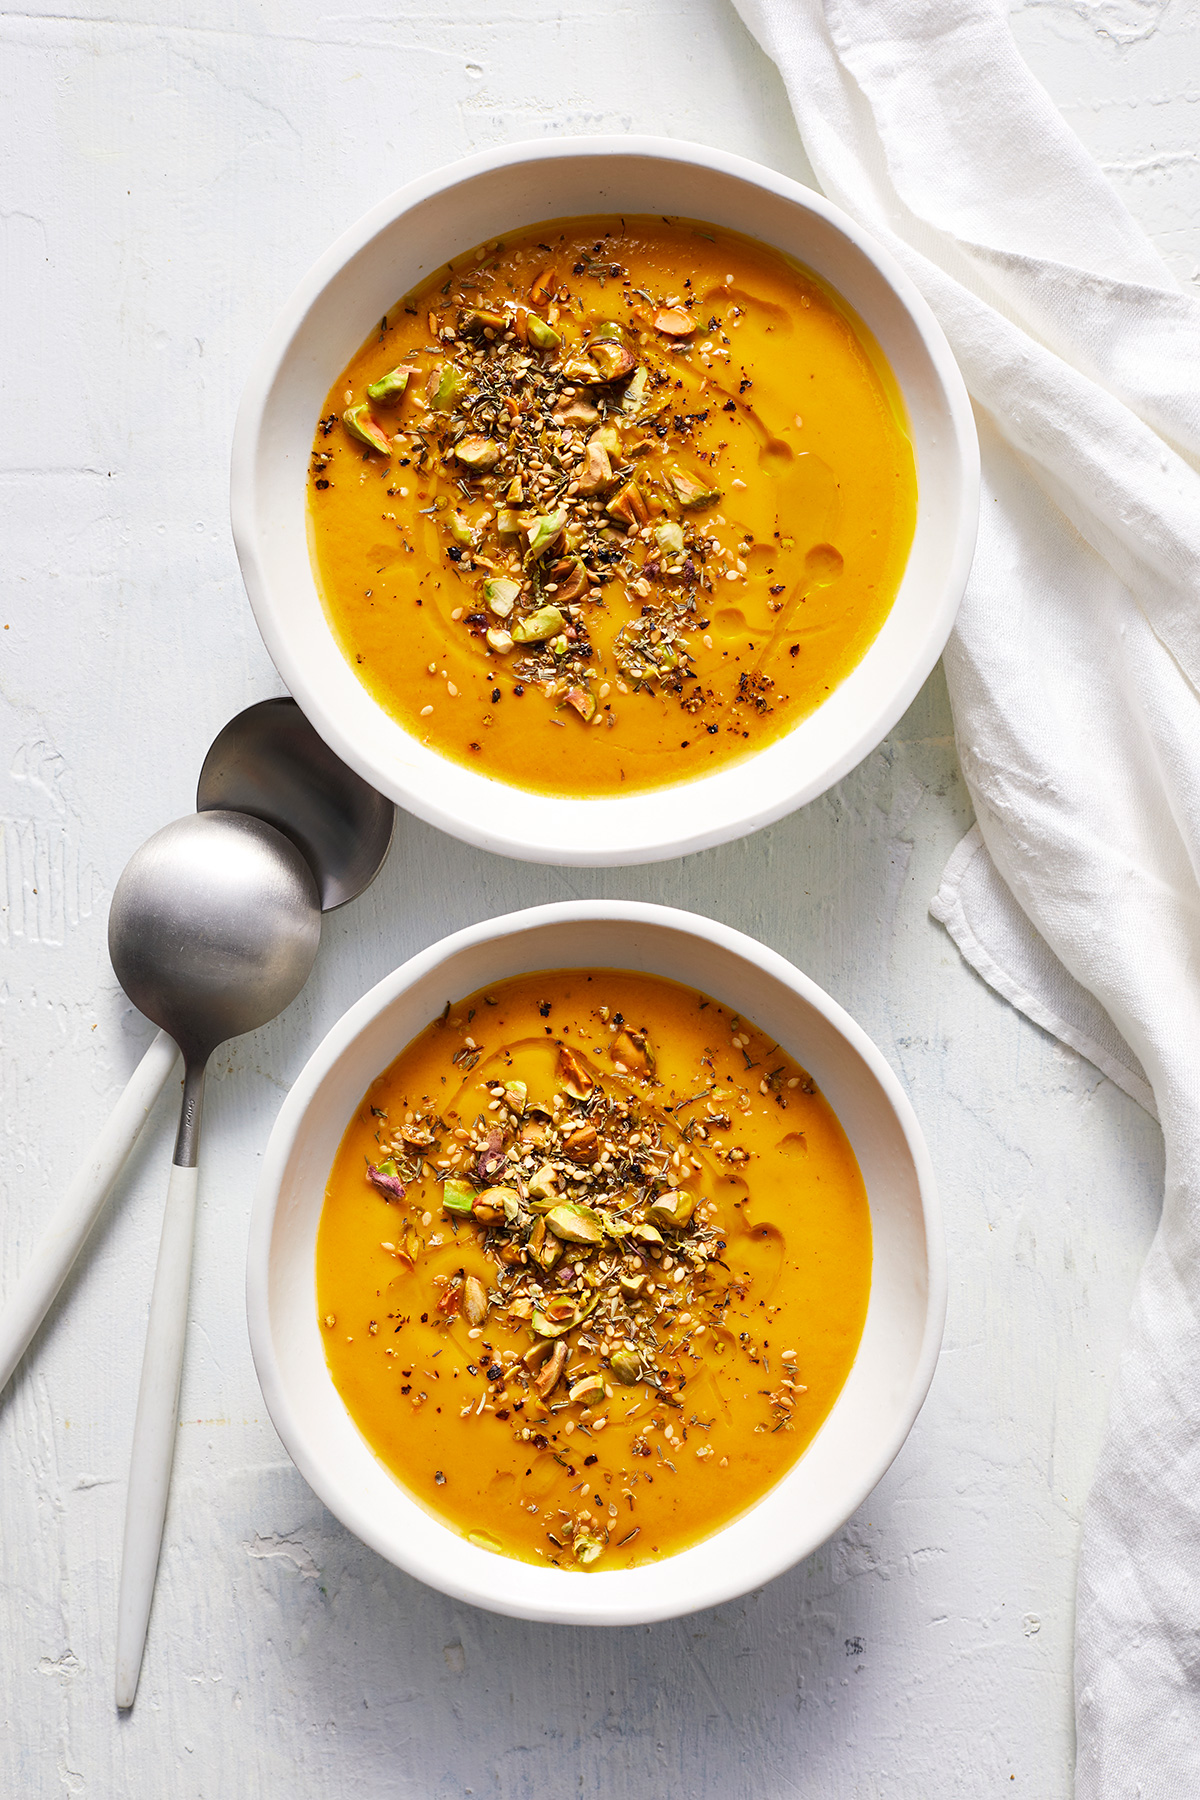 Spiced Sweet Potato Soup With Pistachio-Seed Topping